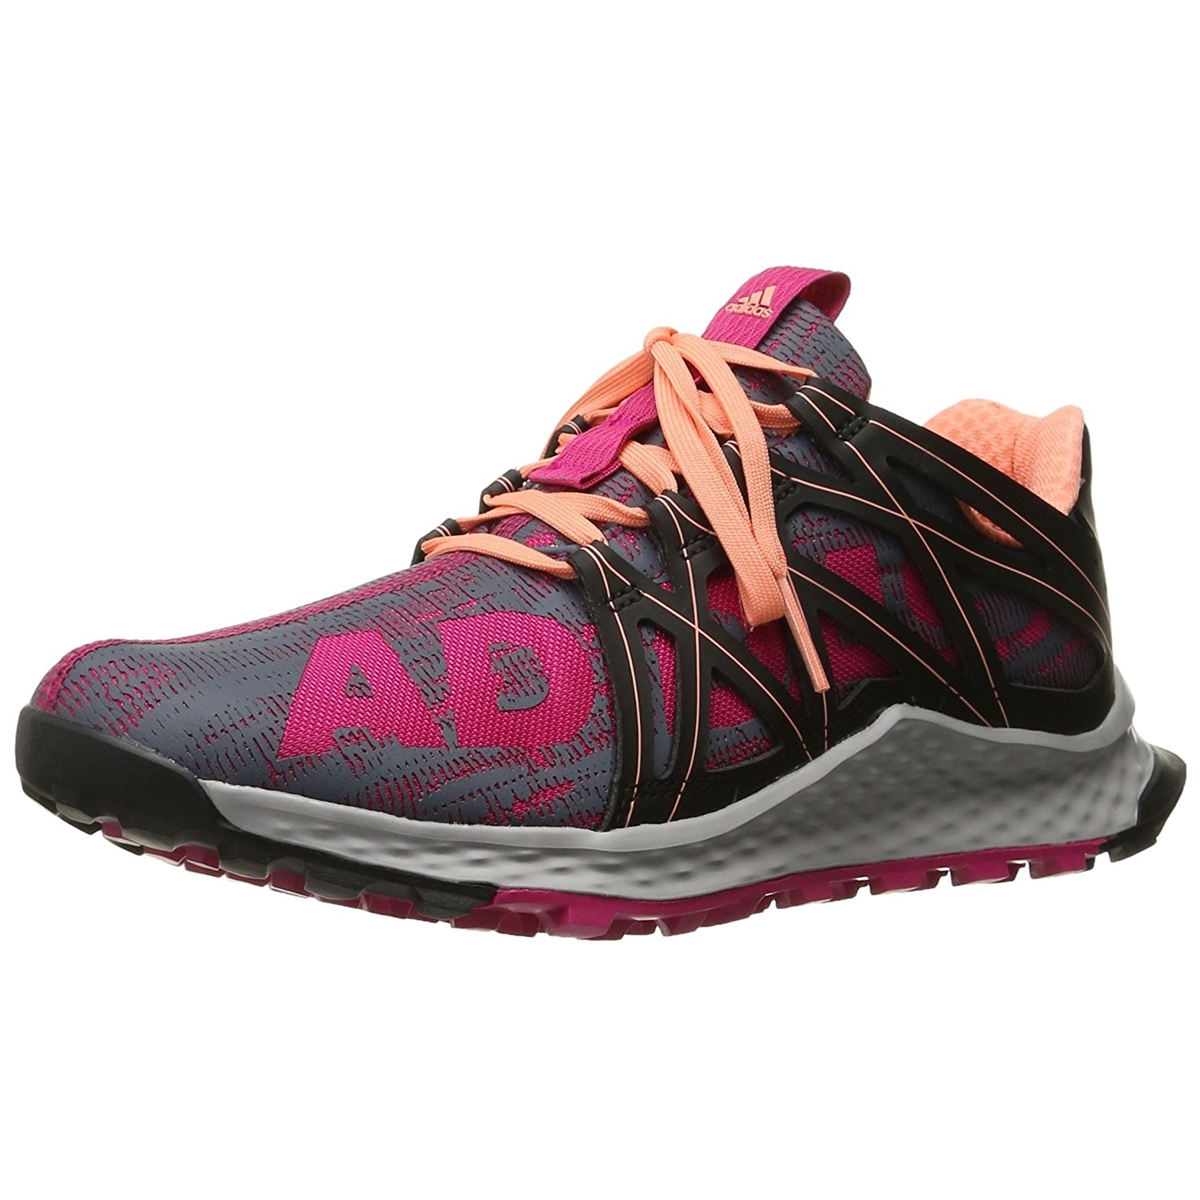 Adidas Women Athletic Shoes Vigor Bounce W Running Shoes Bold Pink black